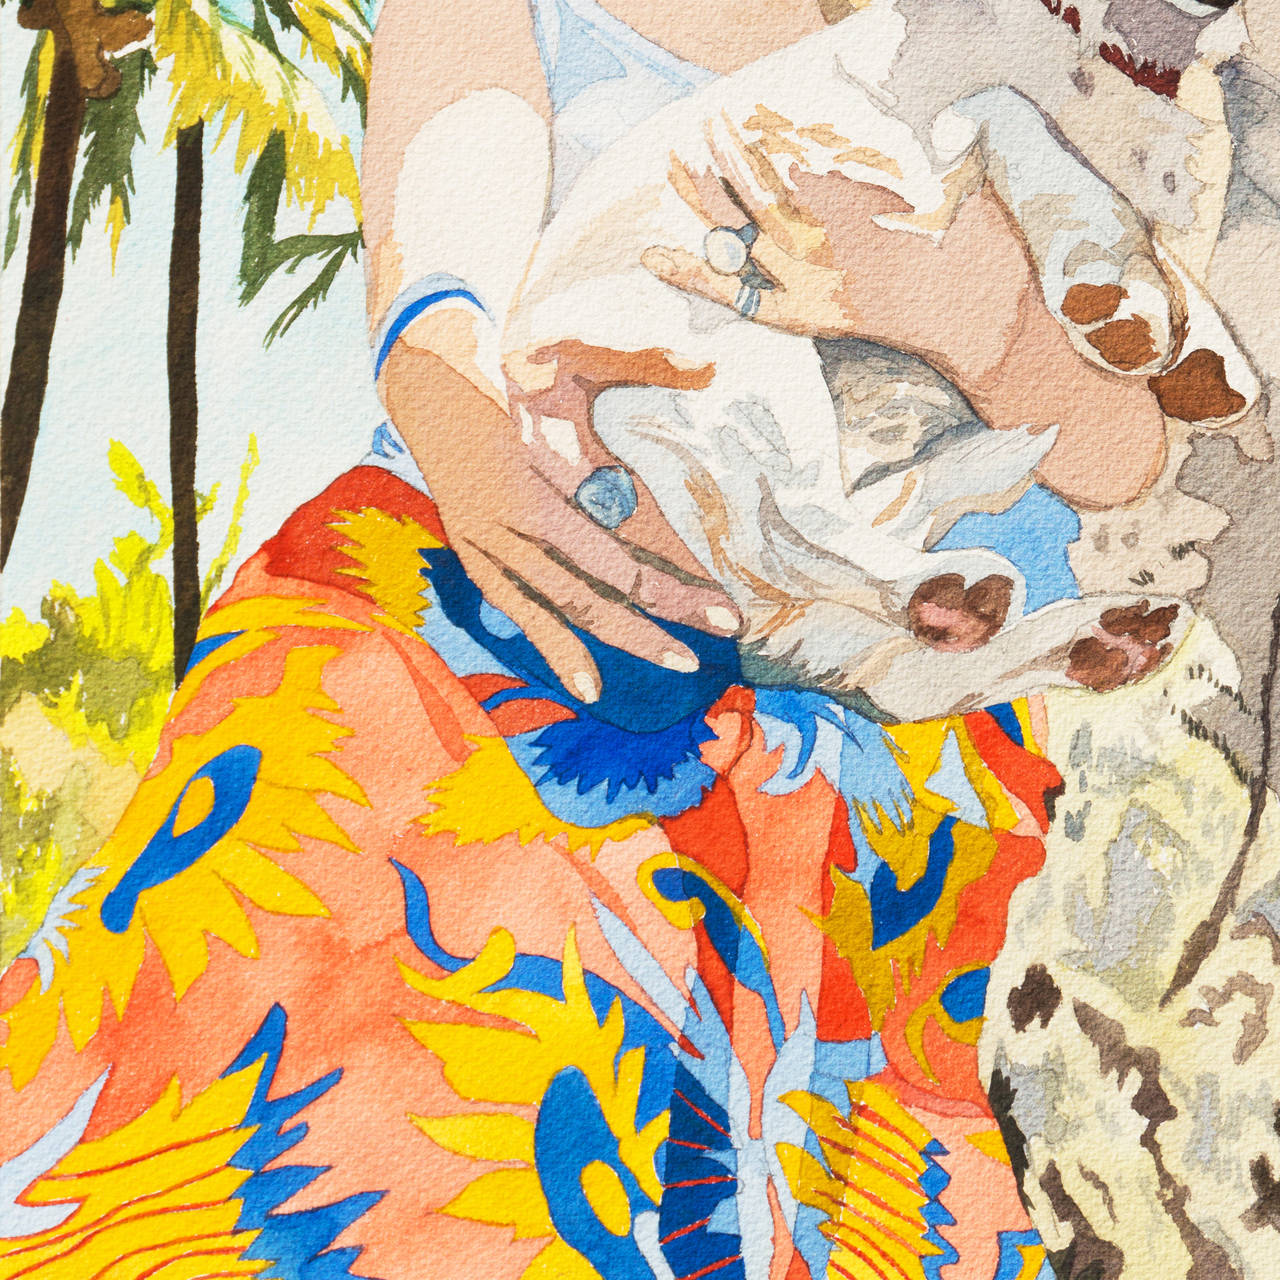 Signed lower right, titled lower left 'Julie and Barney', and dated 1972. Further inscribed, ';a.k.a. Irene Dogmatic'.  A  bright, figural watercolor showing a woman wearing sunglasses and a floral-print skirt and cradling a dog in her arms.  Mosen